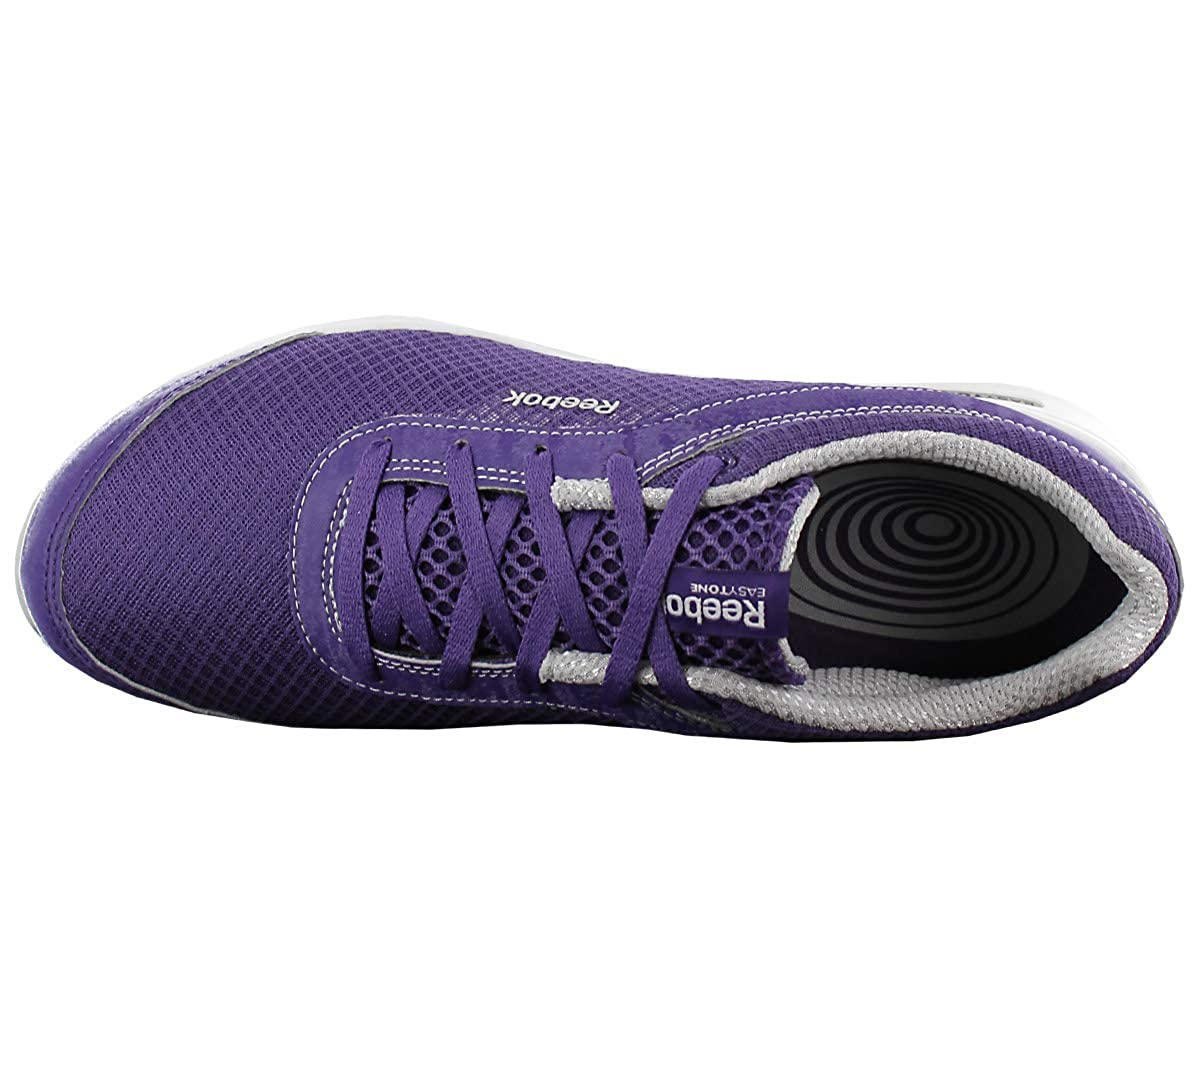 e32e5a8e20d Reebok Easytone Reenew IV Footwear Violet Womens Trainers Sneaker Shoes   Amazon.co.uk  Shoes   Bags